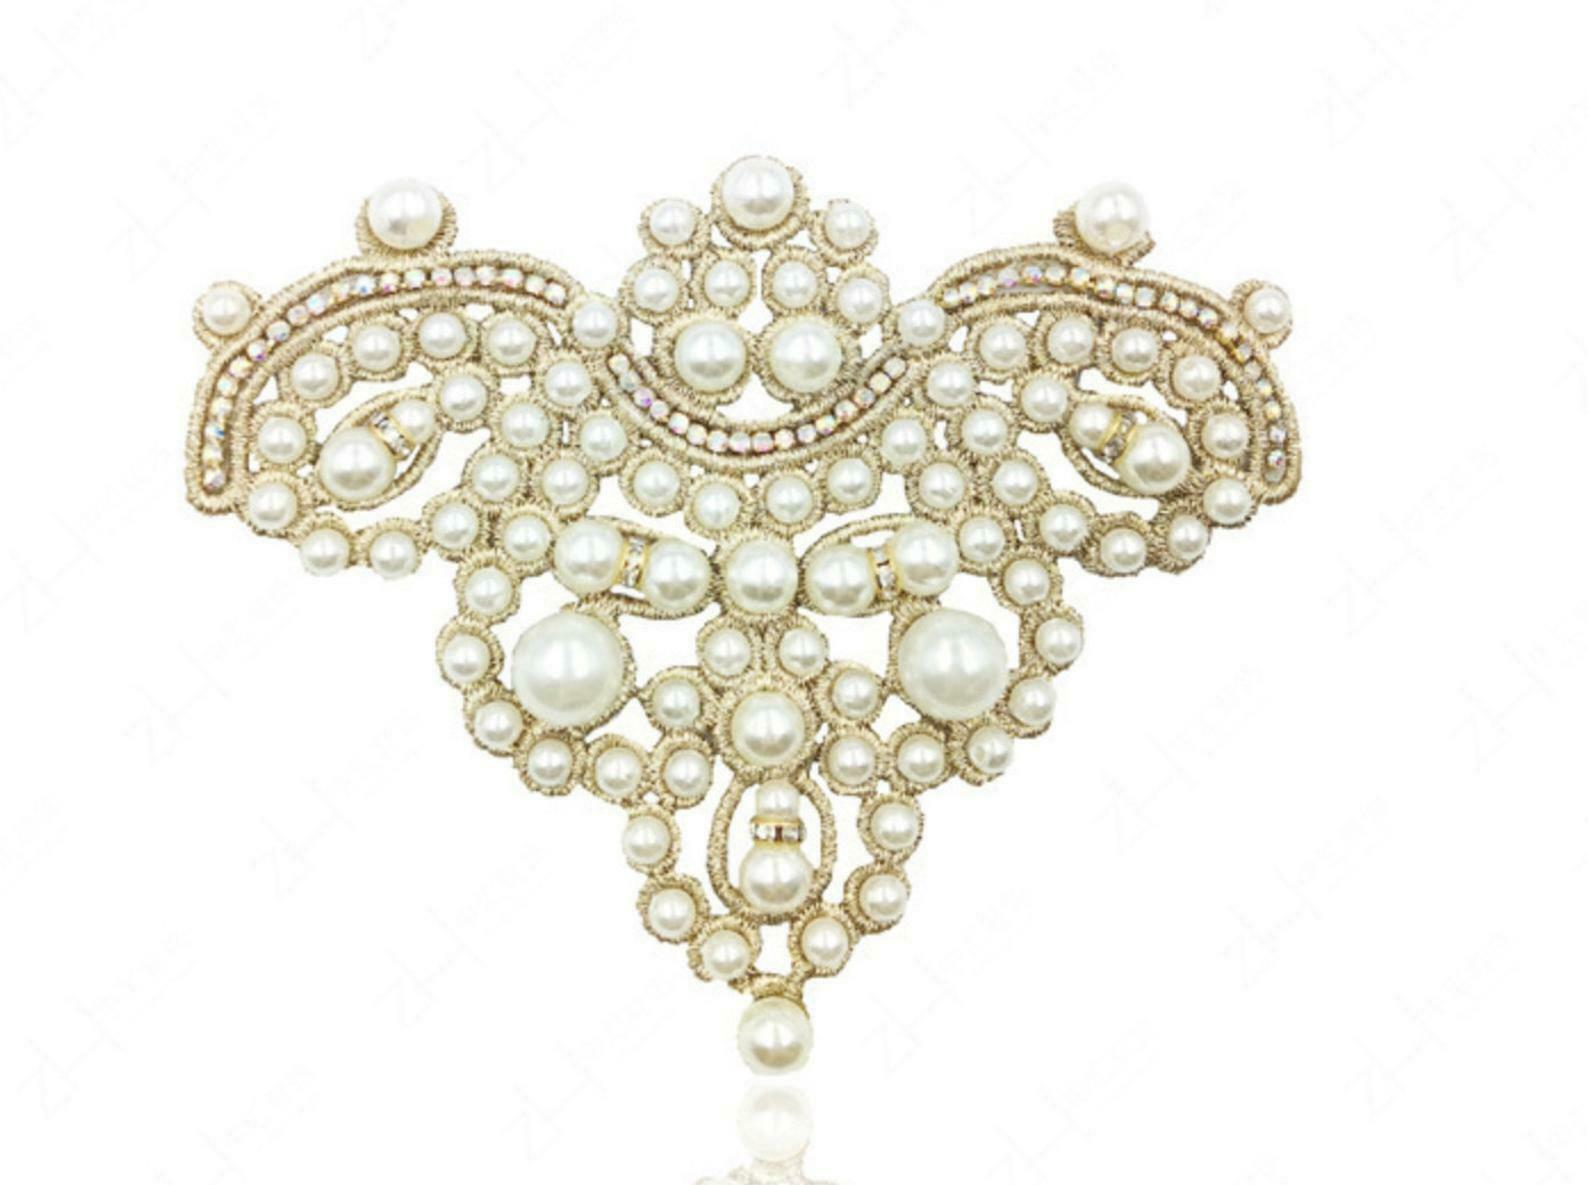 2 Pieces Ivory Pearl Beaded Faux Pearl Stone Shoes Applique Glue On Patch